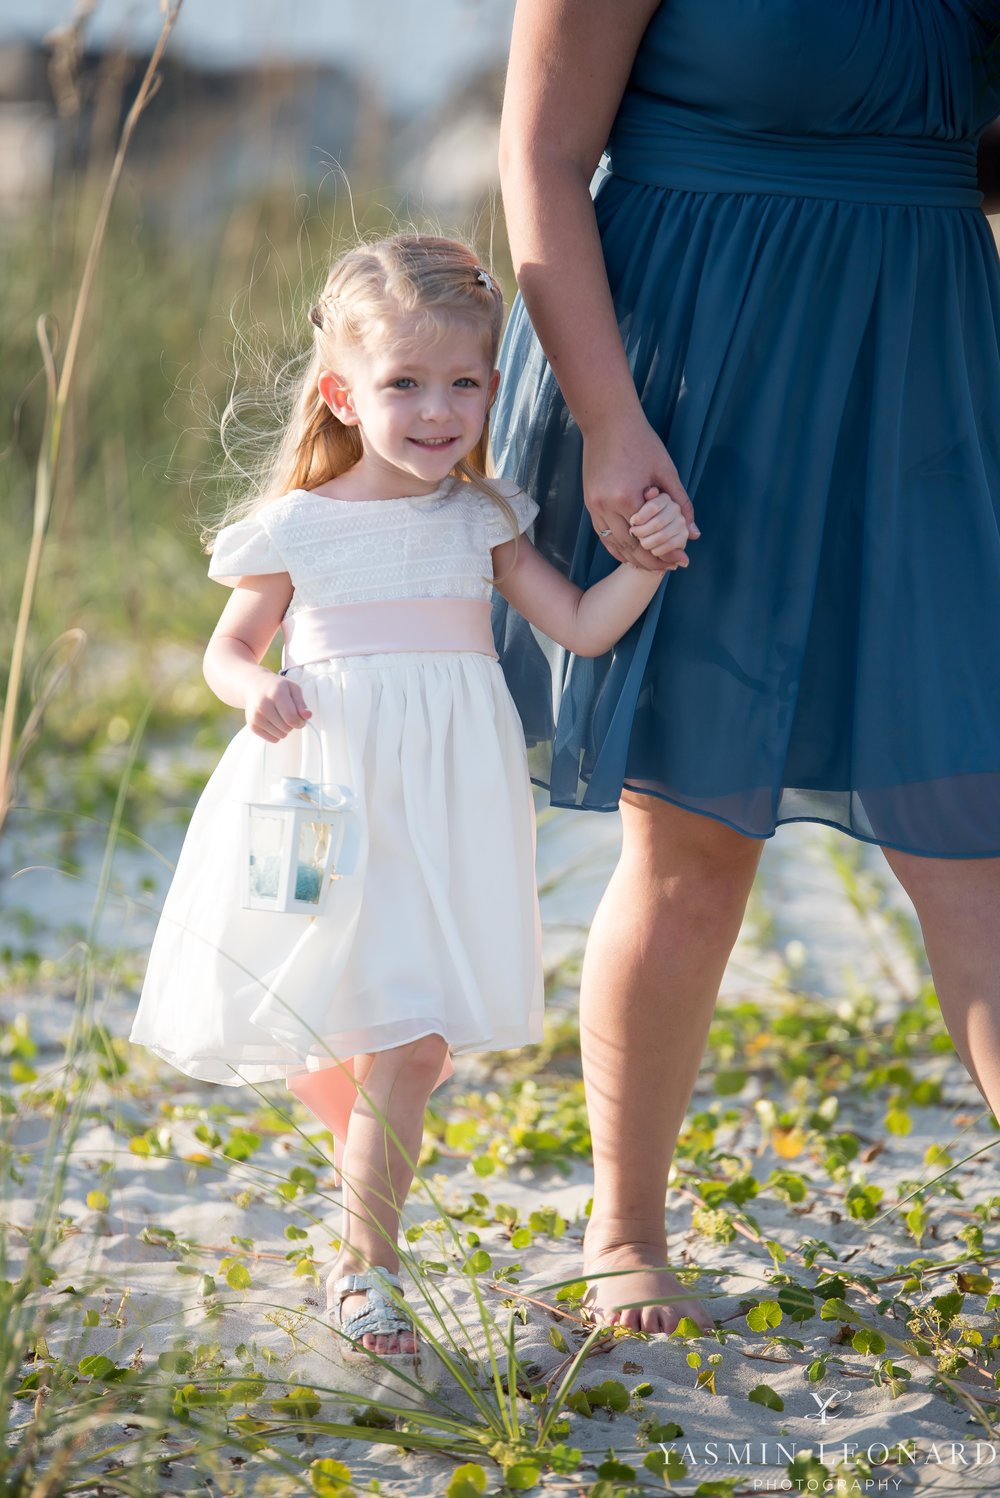 Oak Island _ Oak Island Wedding _ Beach Wedding_NC Beach Wedding_NC Destination Photographer_NC Wedding Photographer_Yasmin Leonard Photography_Beach Themed Wedding-15.jpg